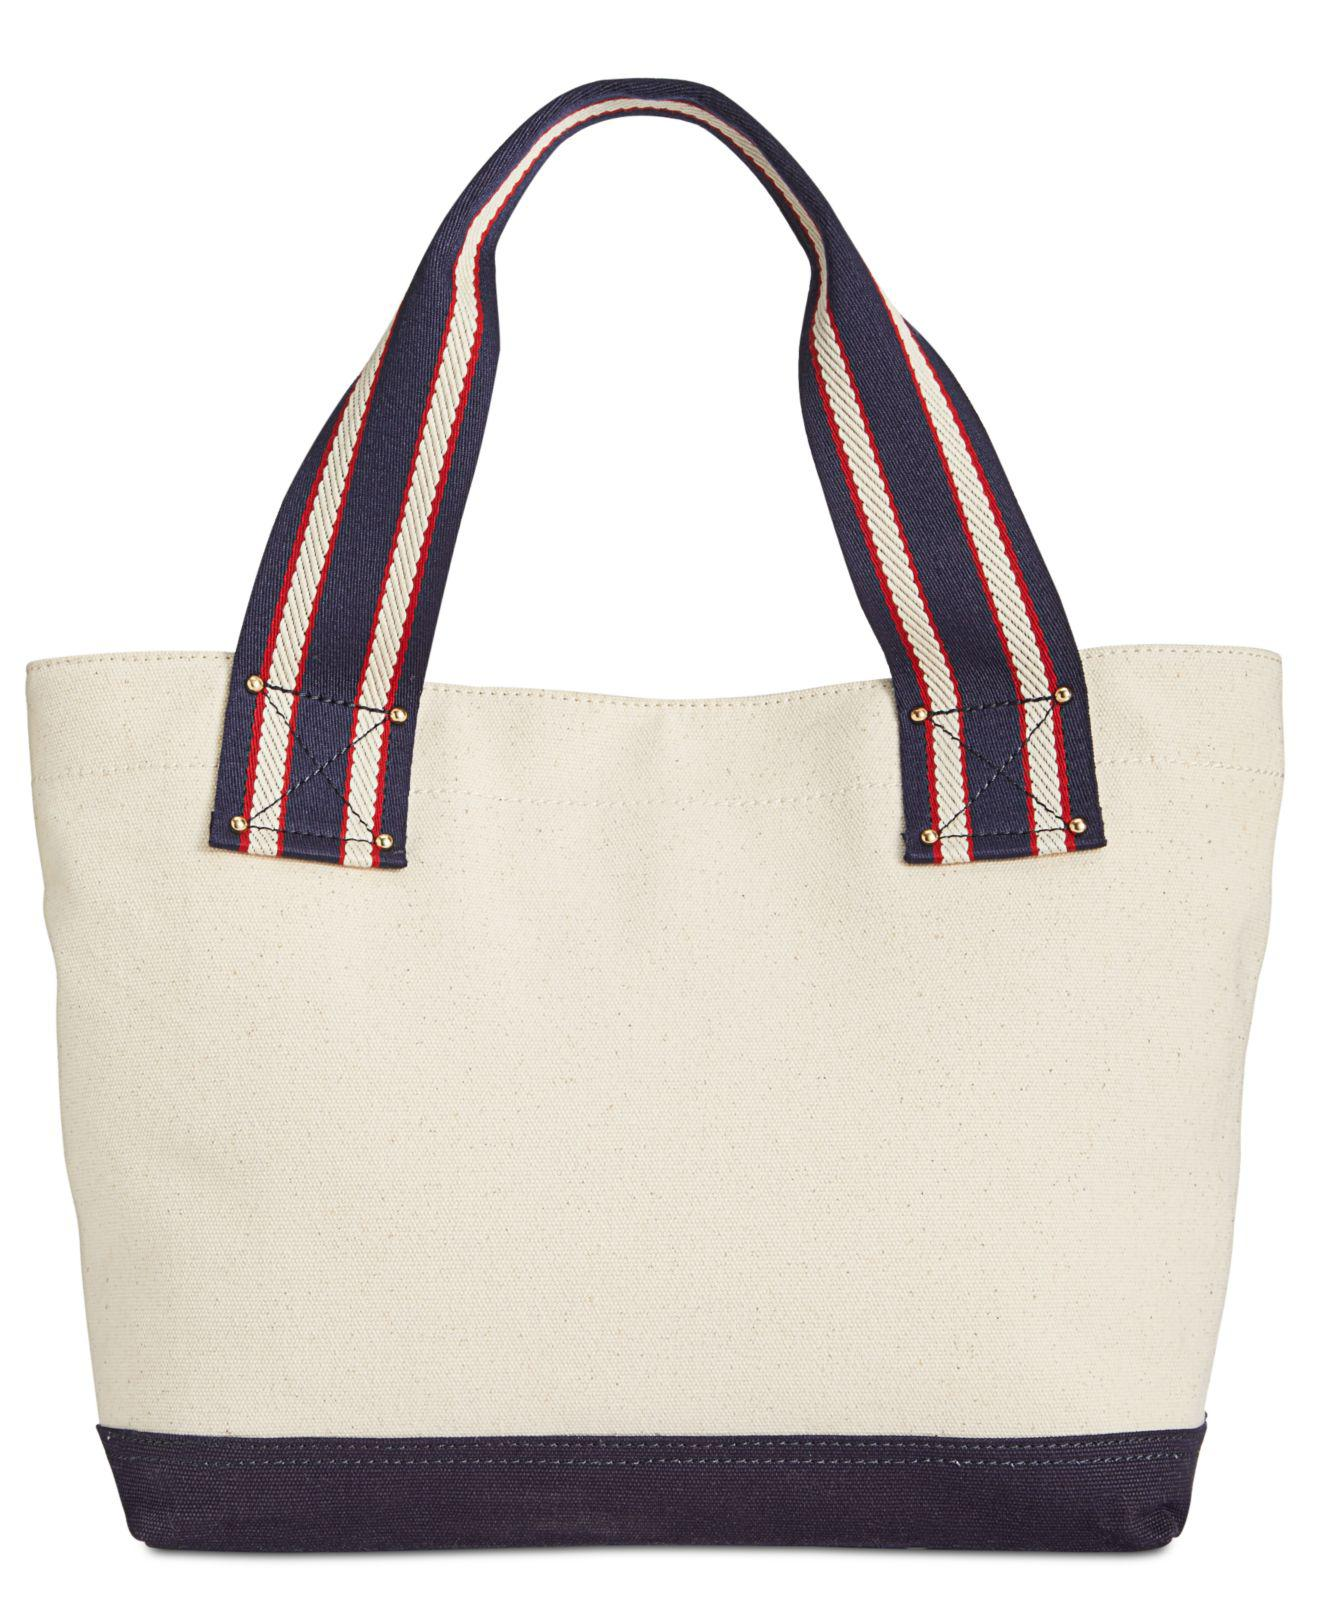 0c770a0327c9 Lyst - Tommy Hilfiger Classic Tommy Anchor Embroidered Tote